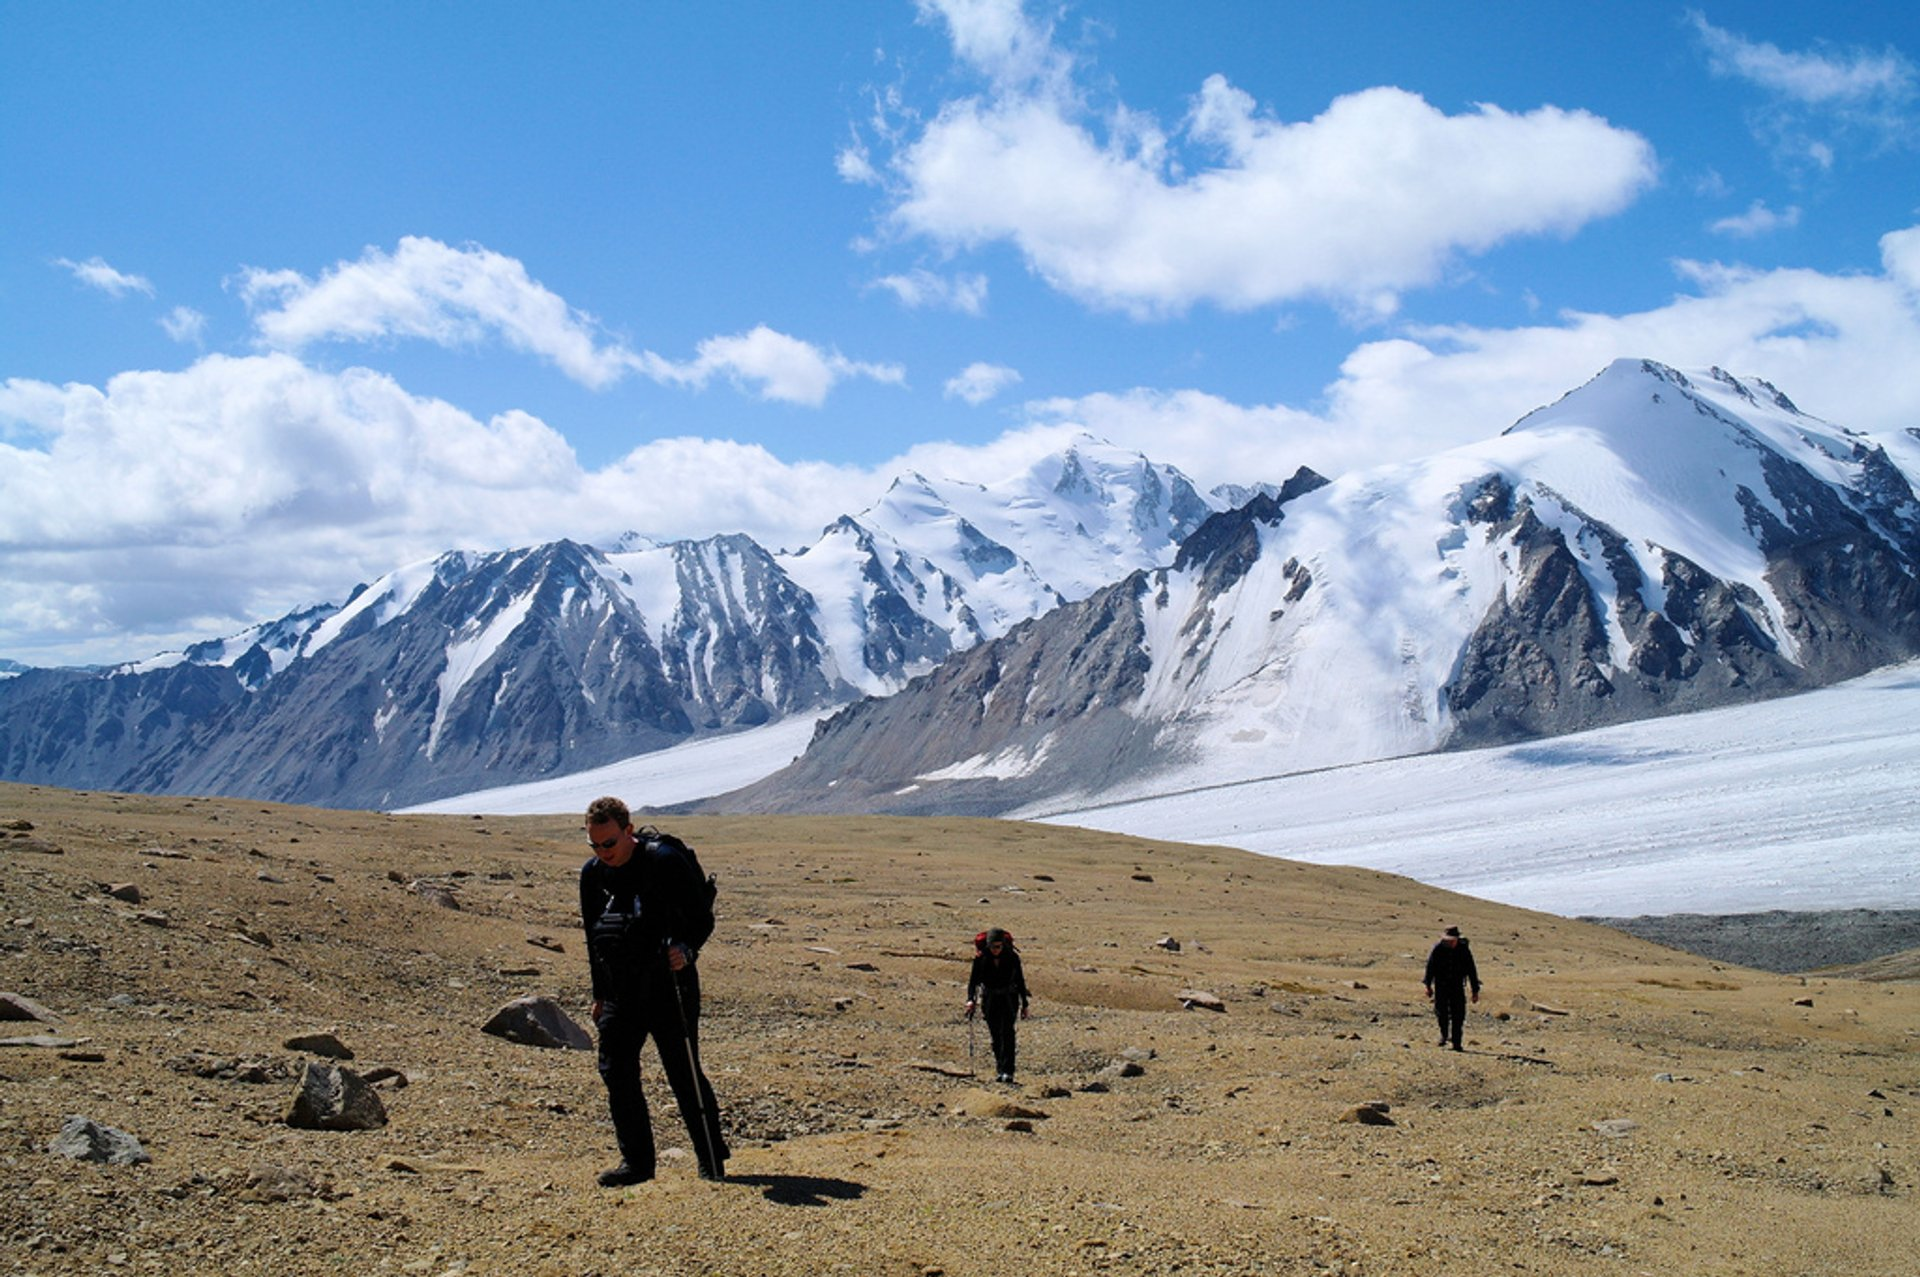 Hiking and Mountaineering in Mongolia - Best Time